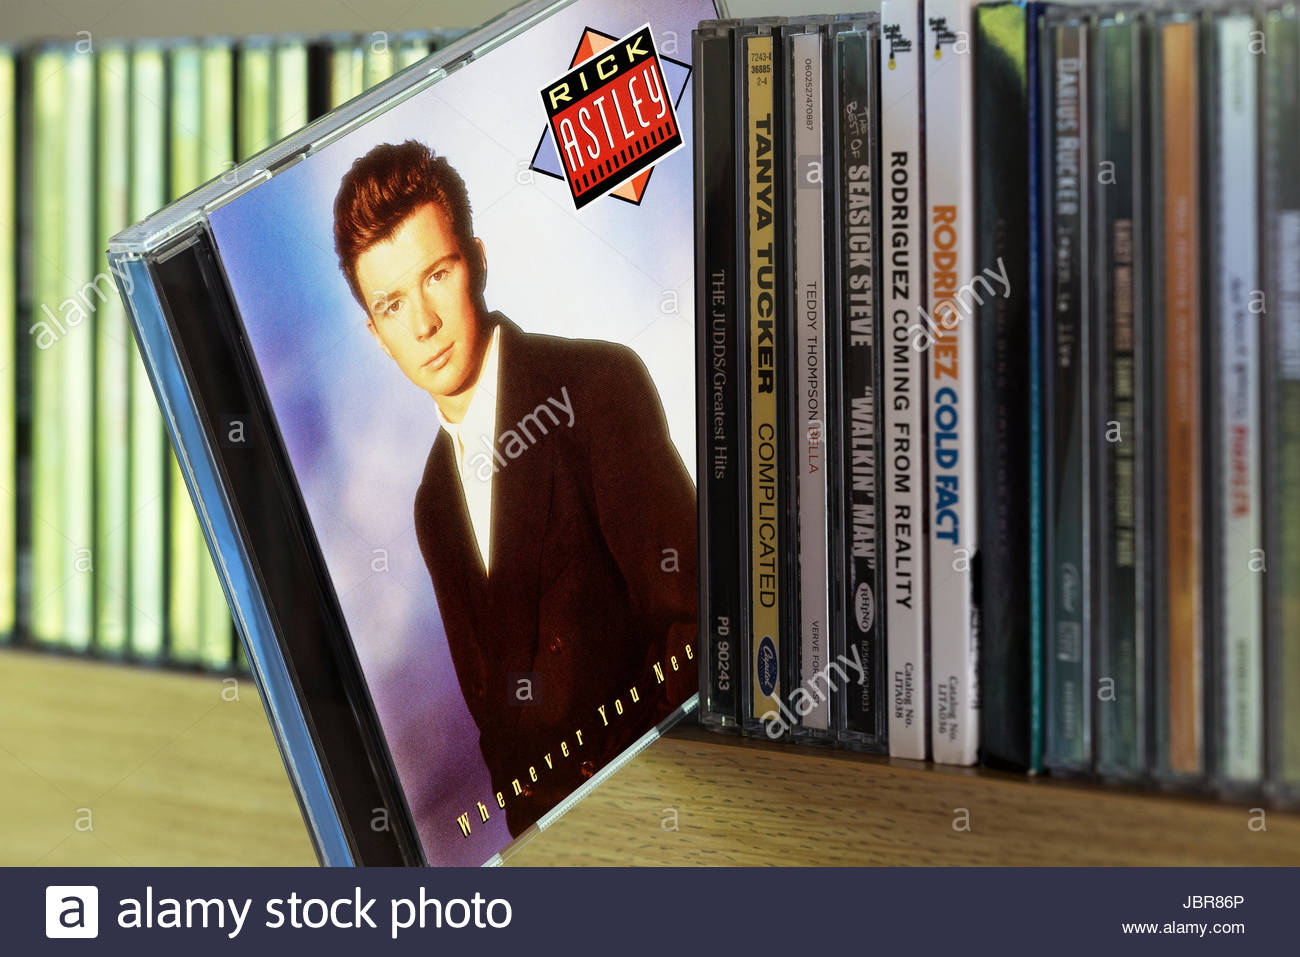 Whenever You Need Somebody, 1987 Rick Astley CD pulled out from among other CD's on a shelf, Dorset, England - Stock Image